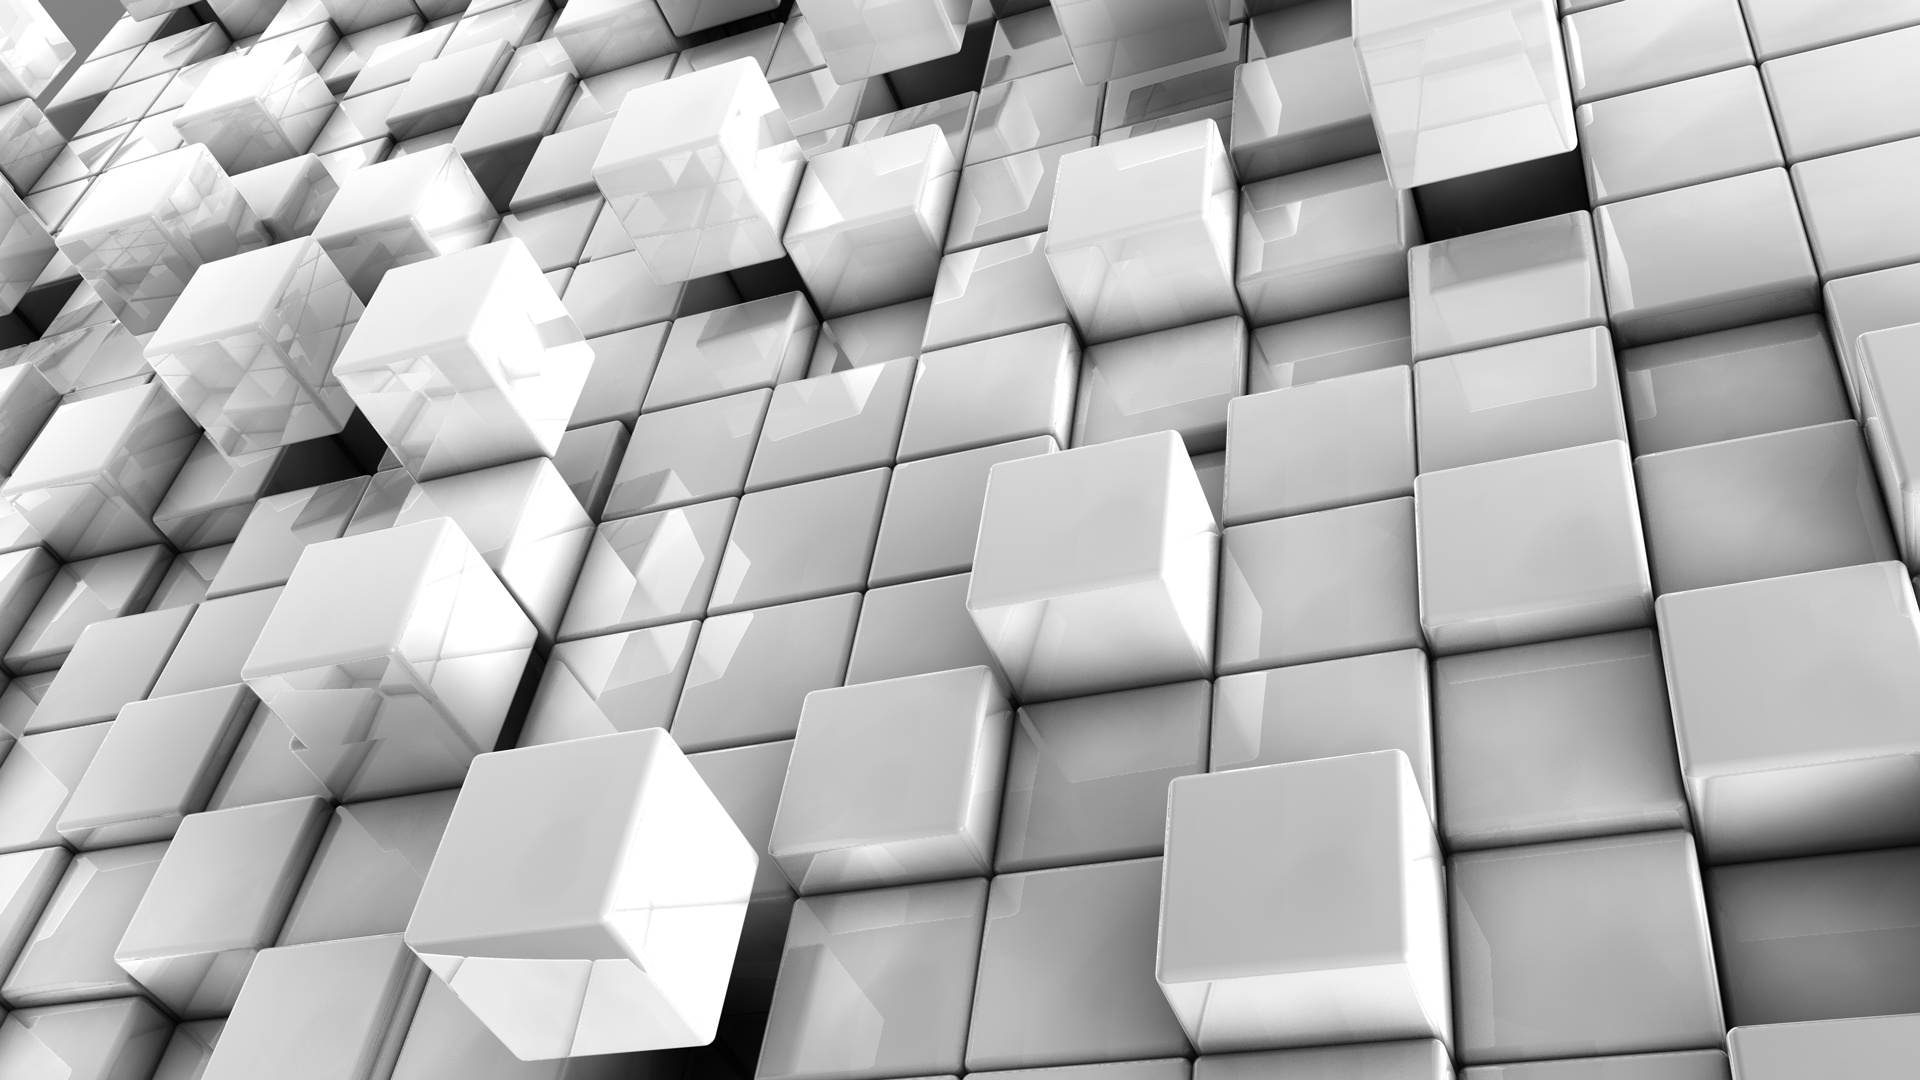 White Abstract Cubes Wallpaper